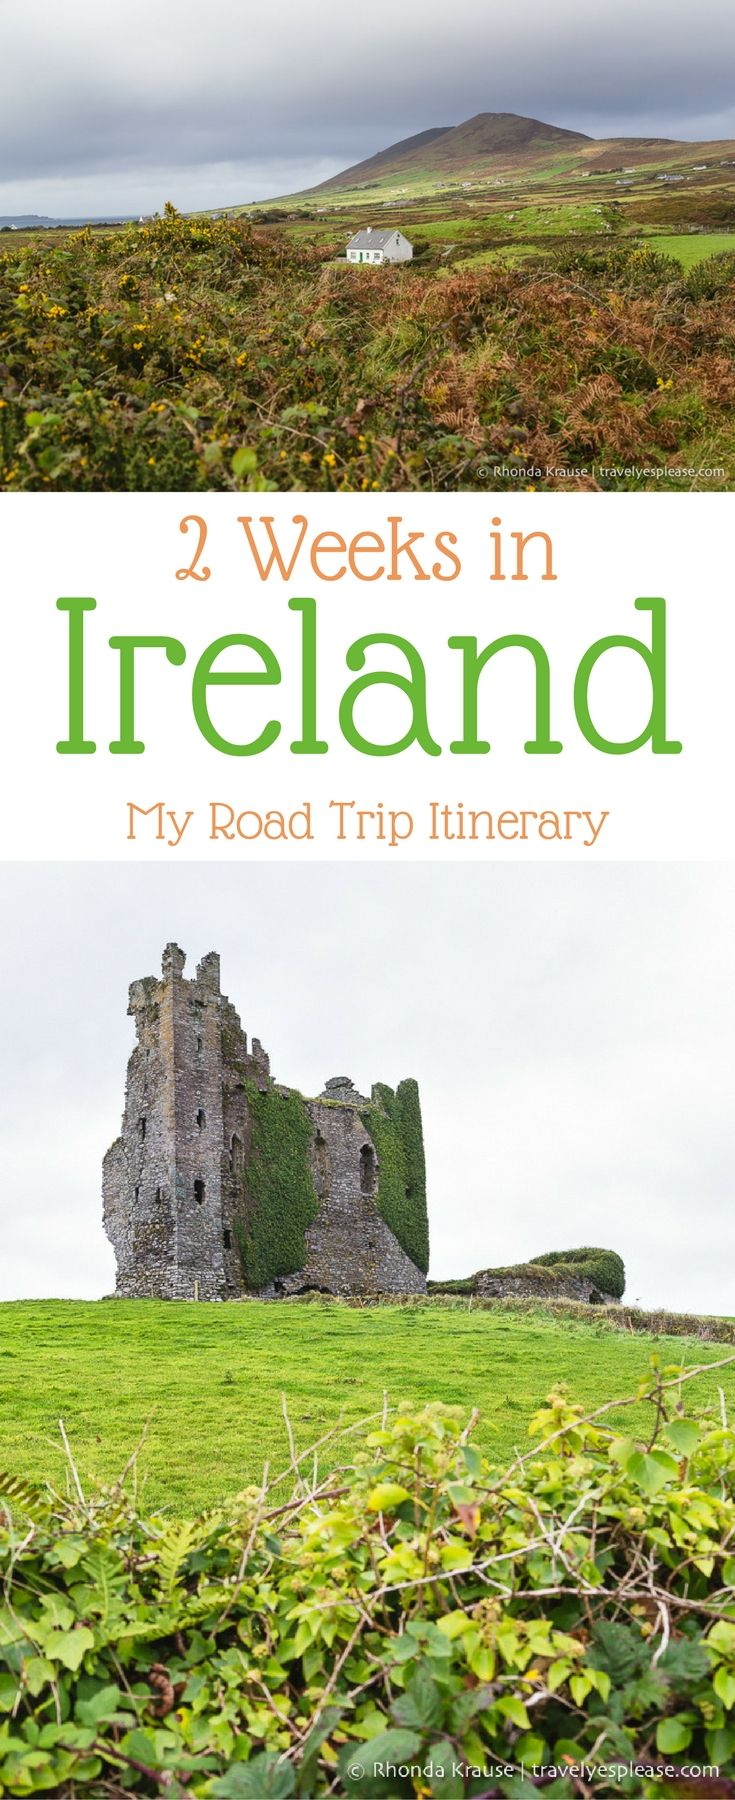 travelyesplease.com | 2 Weeks in Ireland- My Ireland Road Trip Itinerary (Blog Post) | Includes a map, drive times, planning tips, plus hits & misses from my 2 weeks in Ireland.